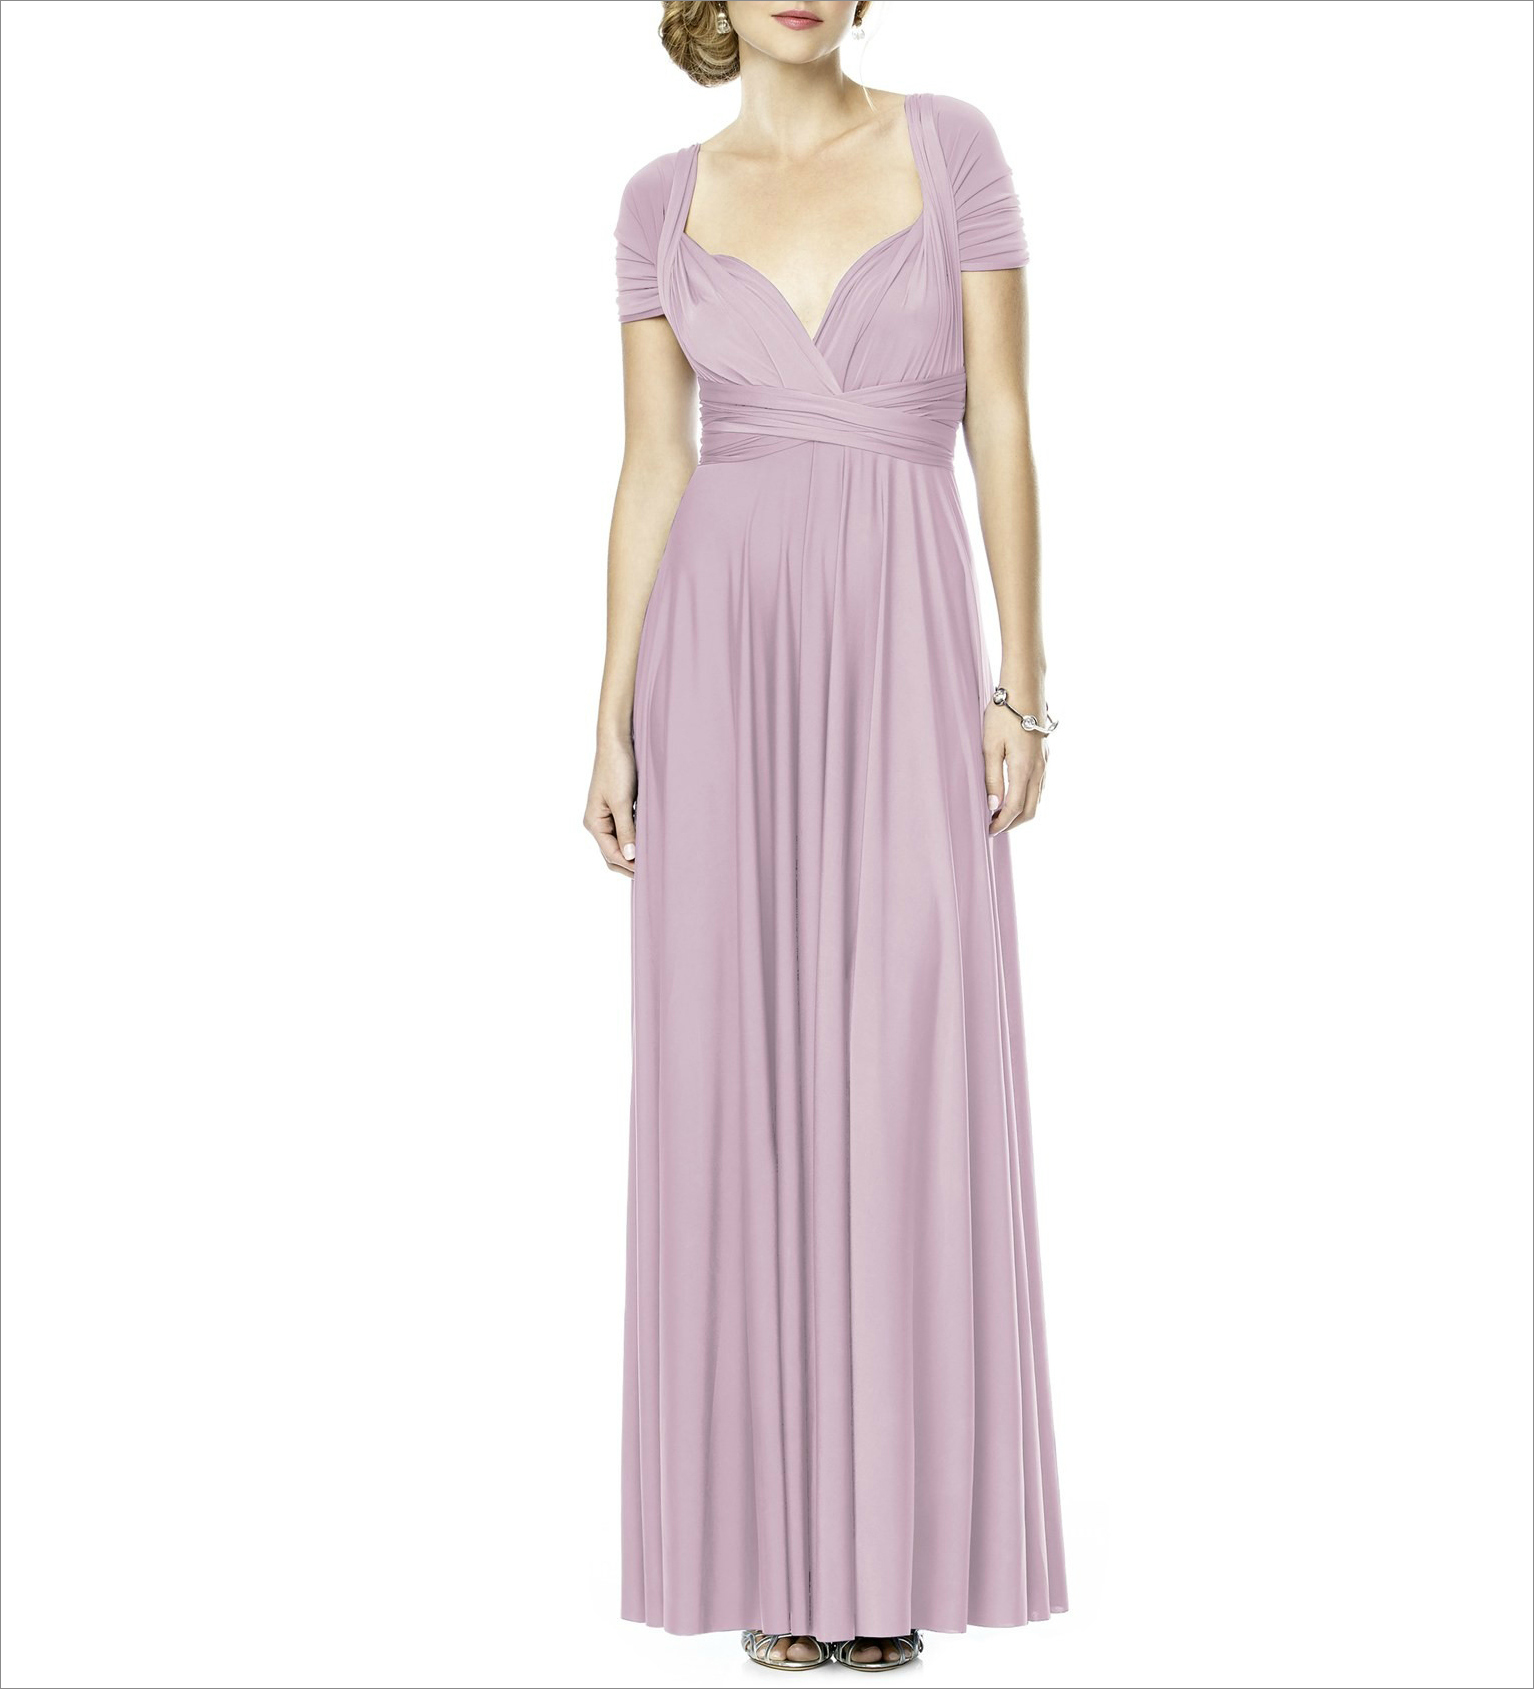 Lavender convertible wrap dress bridesmaid dress ideas under 150